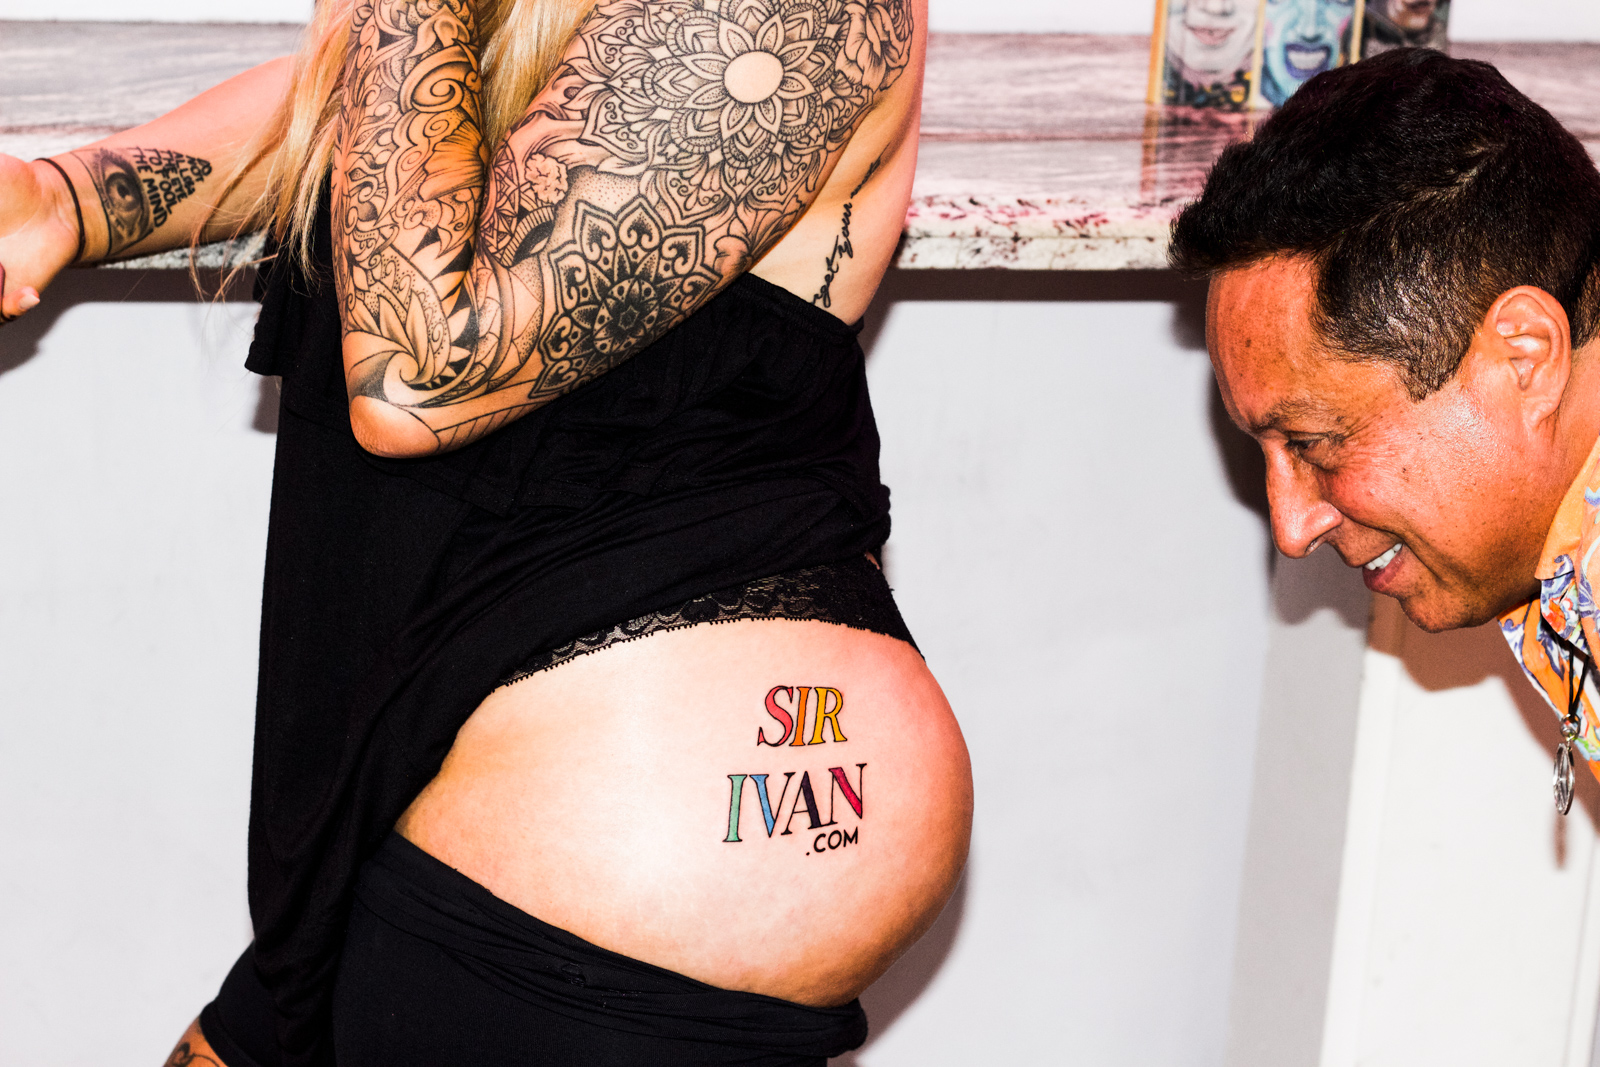 Girl auctions off butt space for tattoo 247 ink magazine for Tattoos on your butt